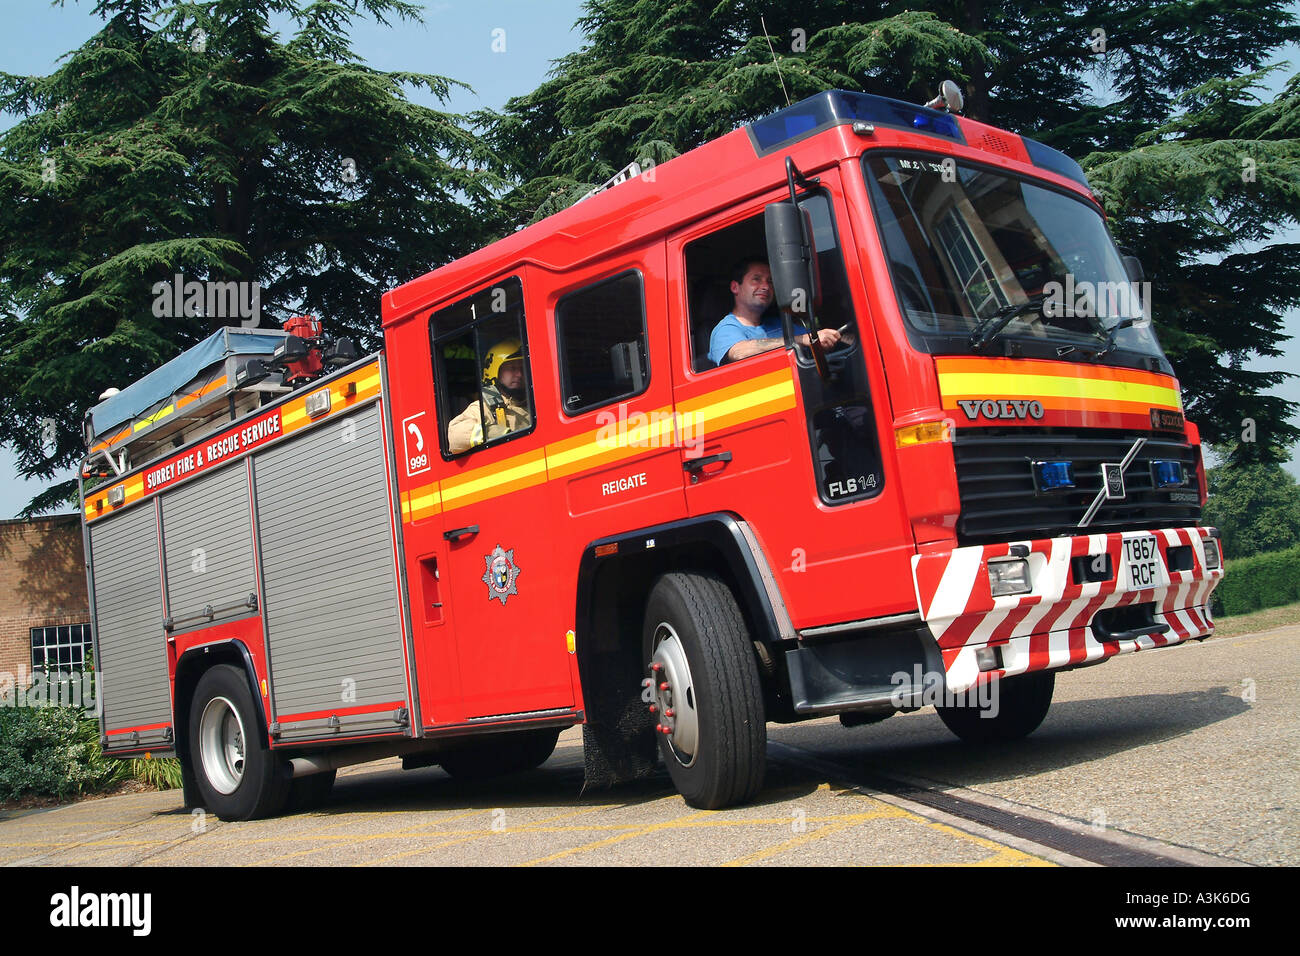 Surrey Fire and Rescue Service fire appliance - Stock Image